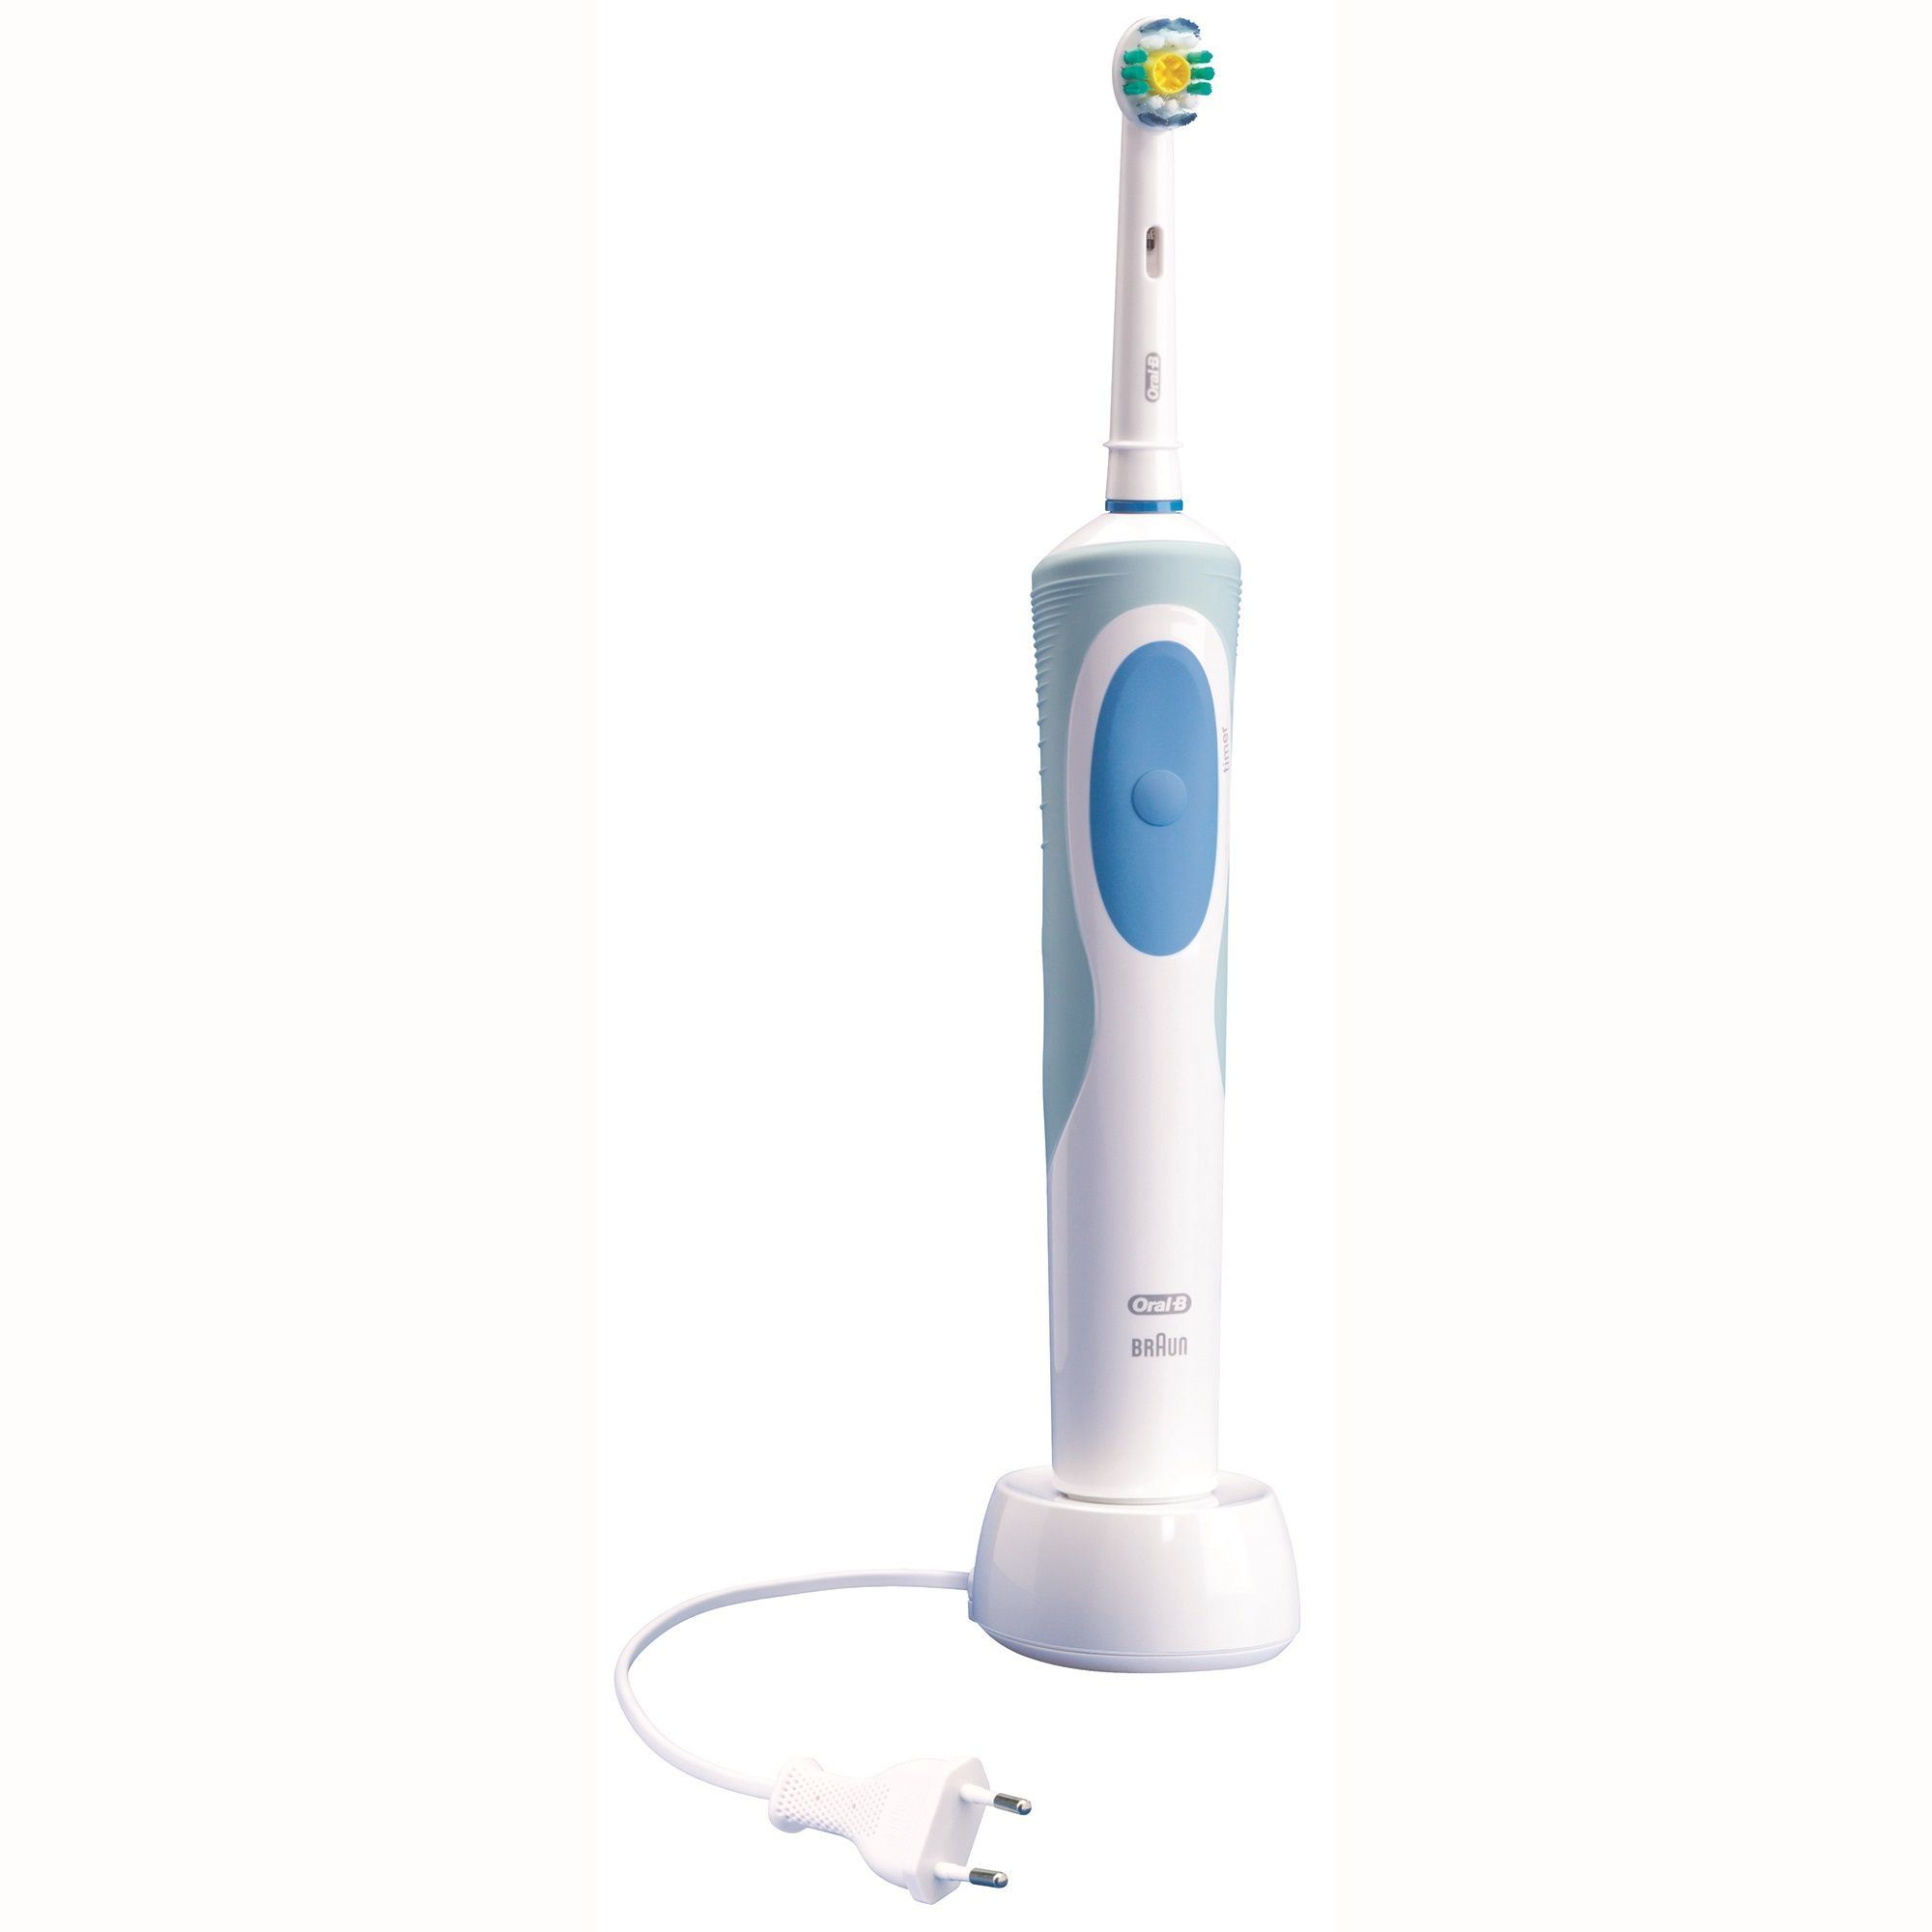 Went to purchase a single oral B precision clean head in local department store. Balking at the price, I decided to try amazon first. Ended up purchasing a quantity of 4 precision heads (including shipping) for about the same cost as the department store wanted for bauernhoftester.ml A BARGAIN!